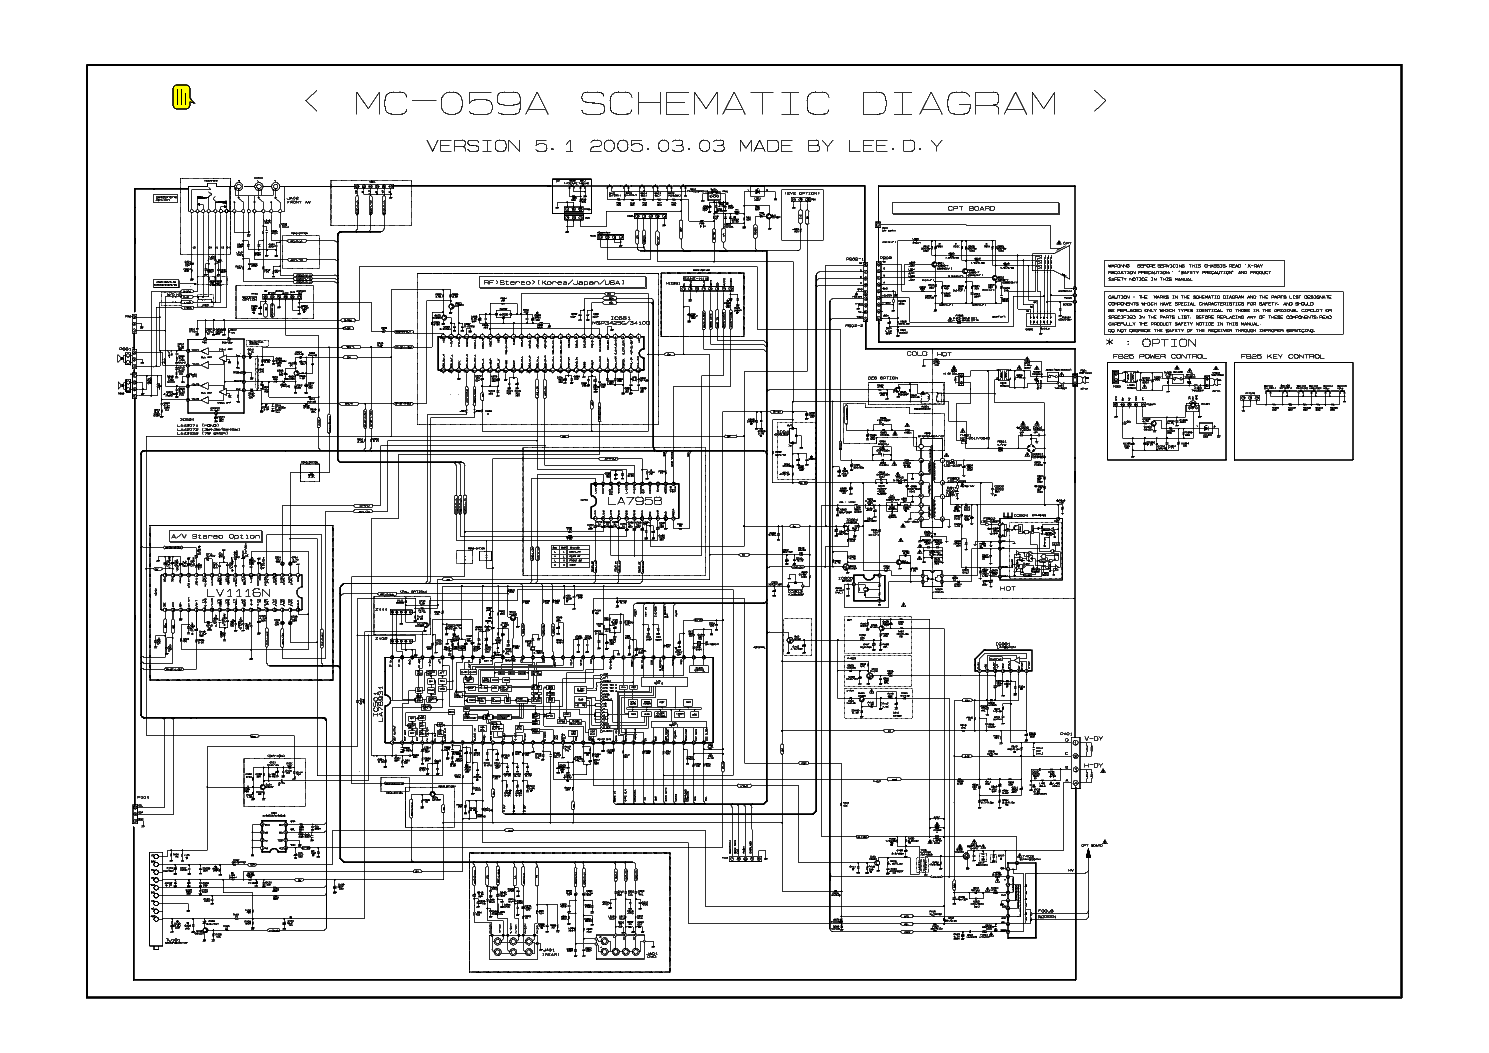 schematic diagram tv schematic image lg tv 21fb3ab ph mc059a b sch service manual on schematic diagram tv